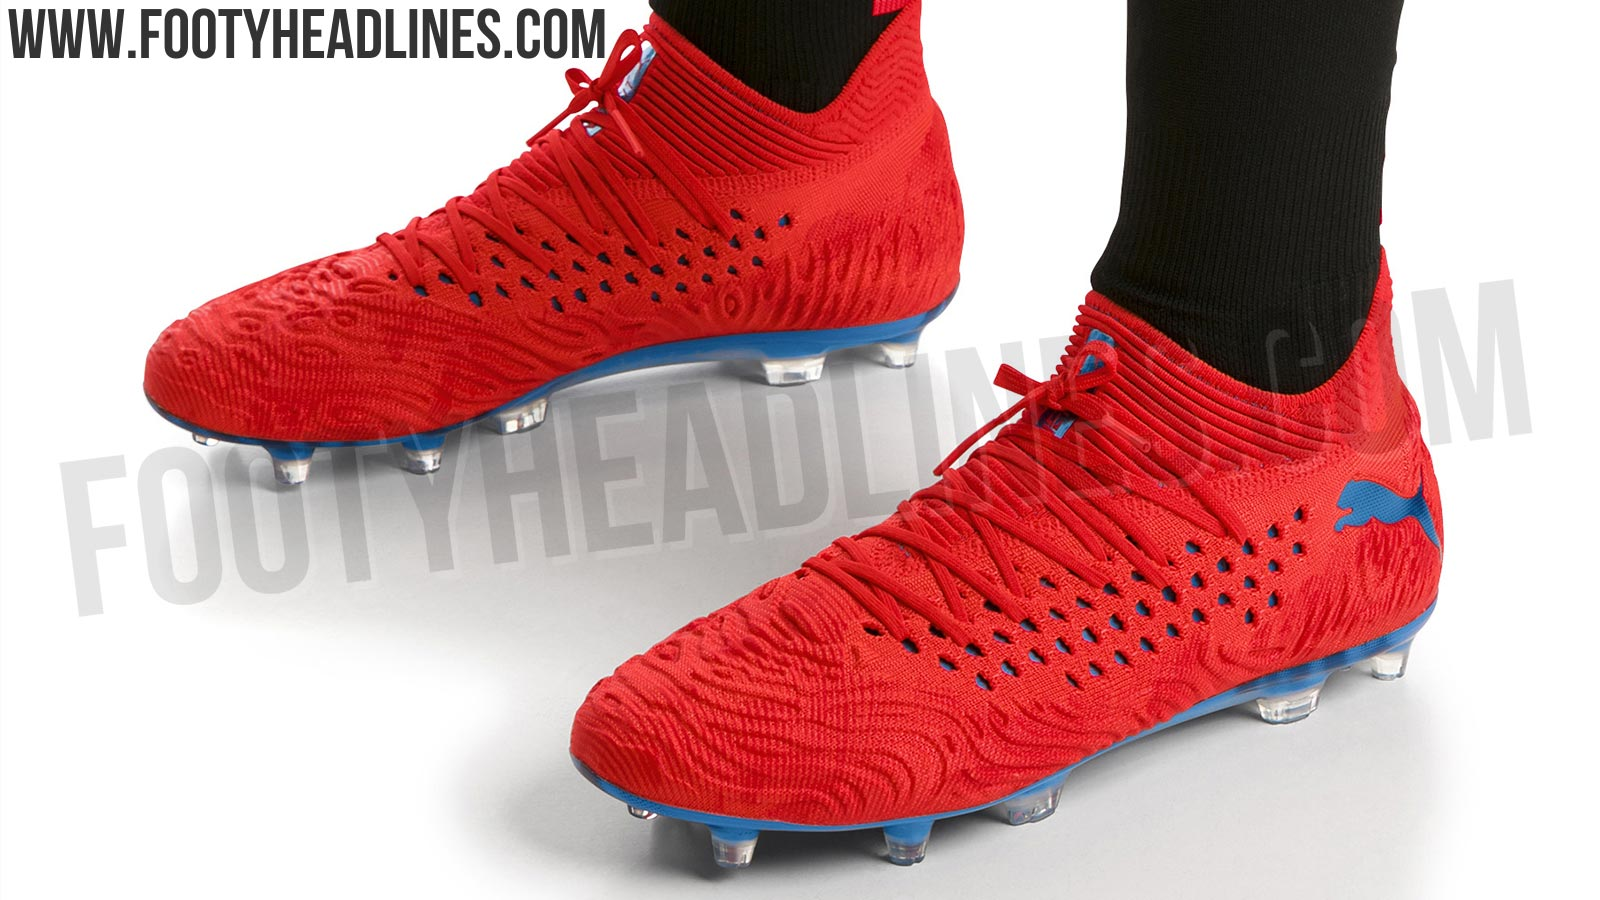 f9e1700073 Release This Week  Puma Power Up Pack Teased - New Generations for ...